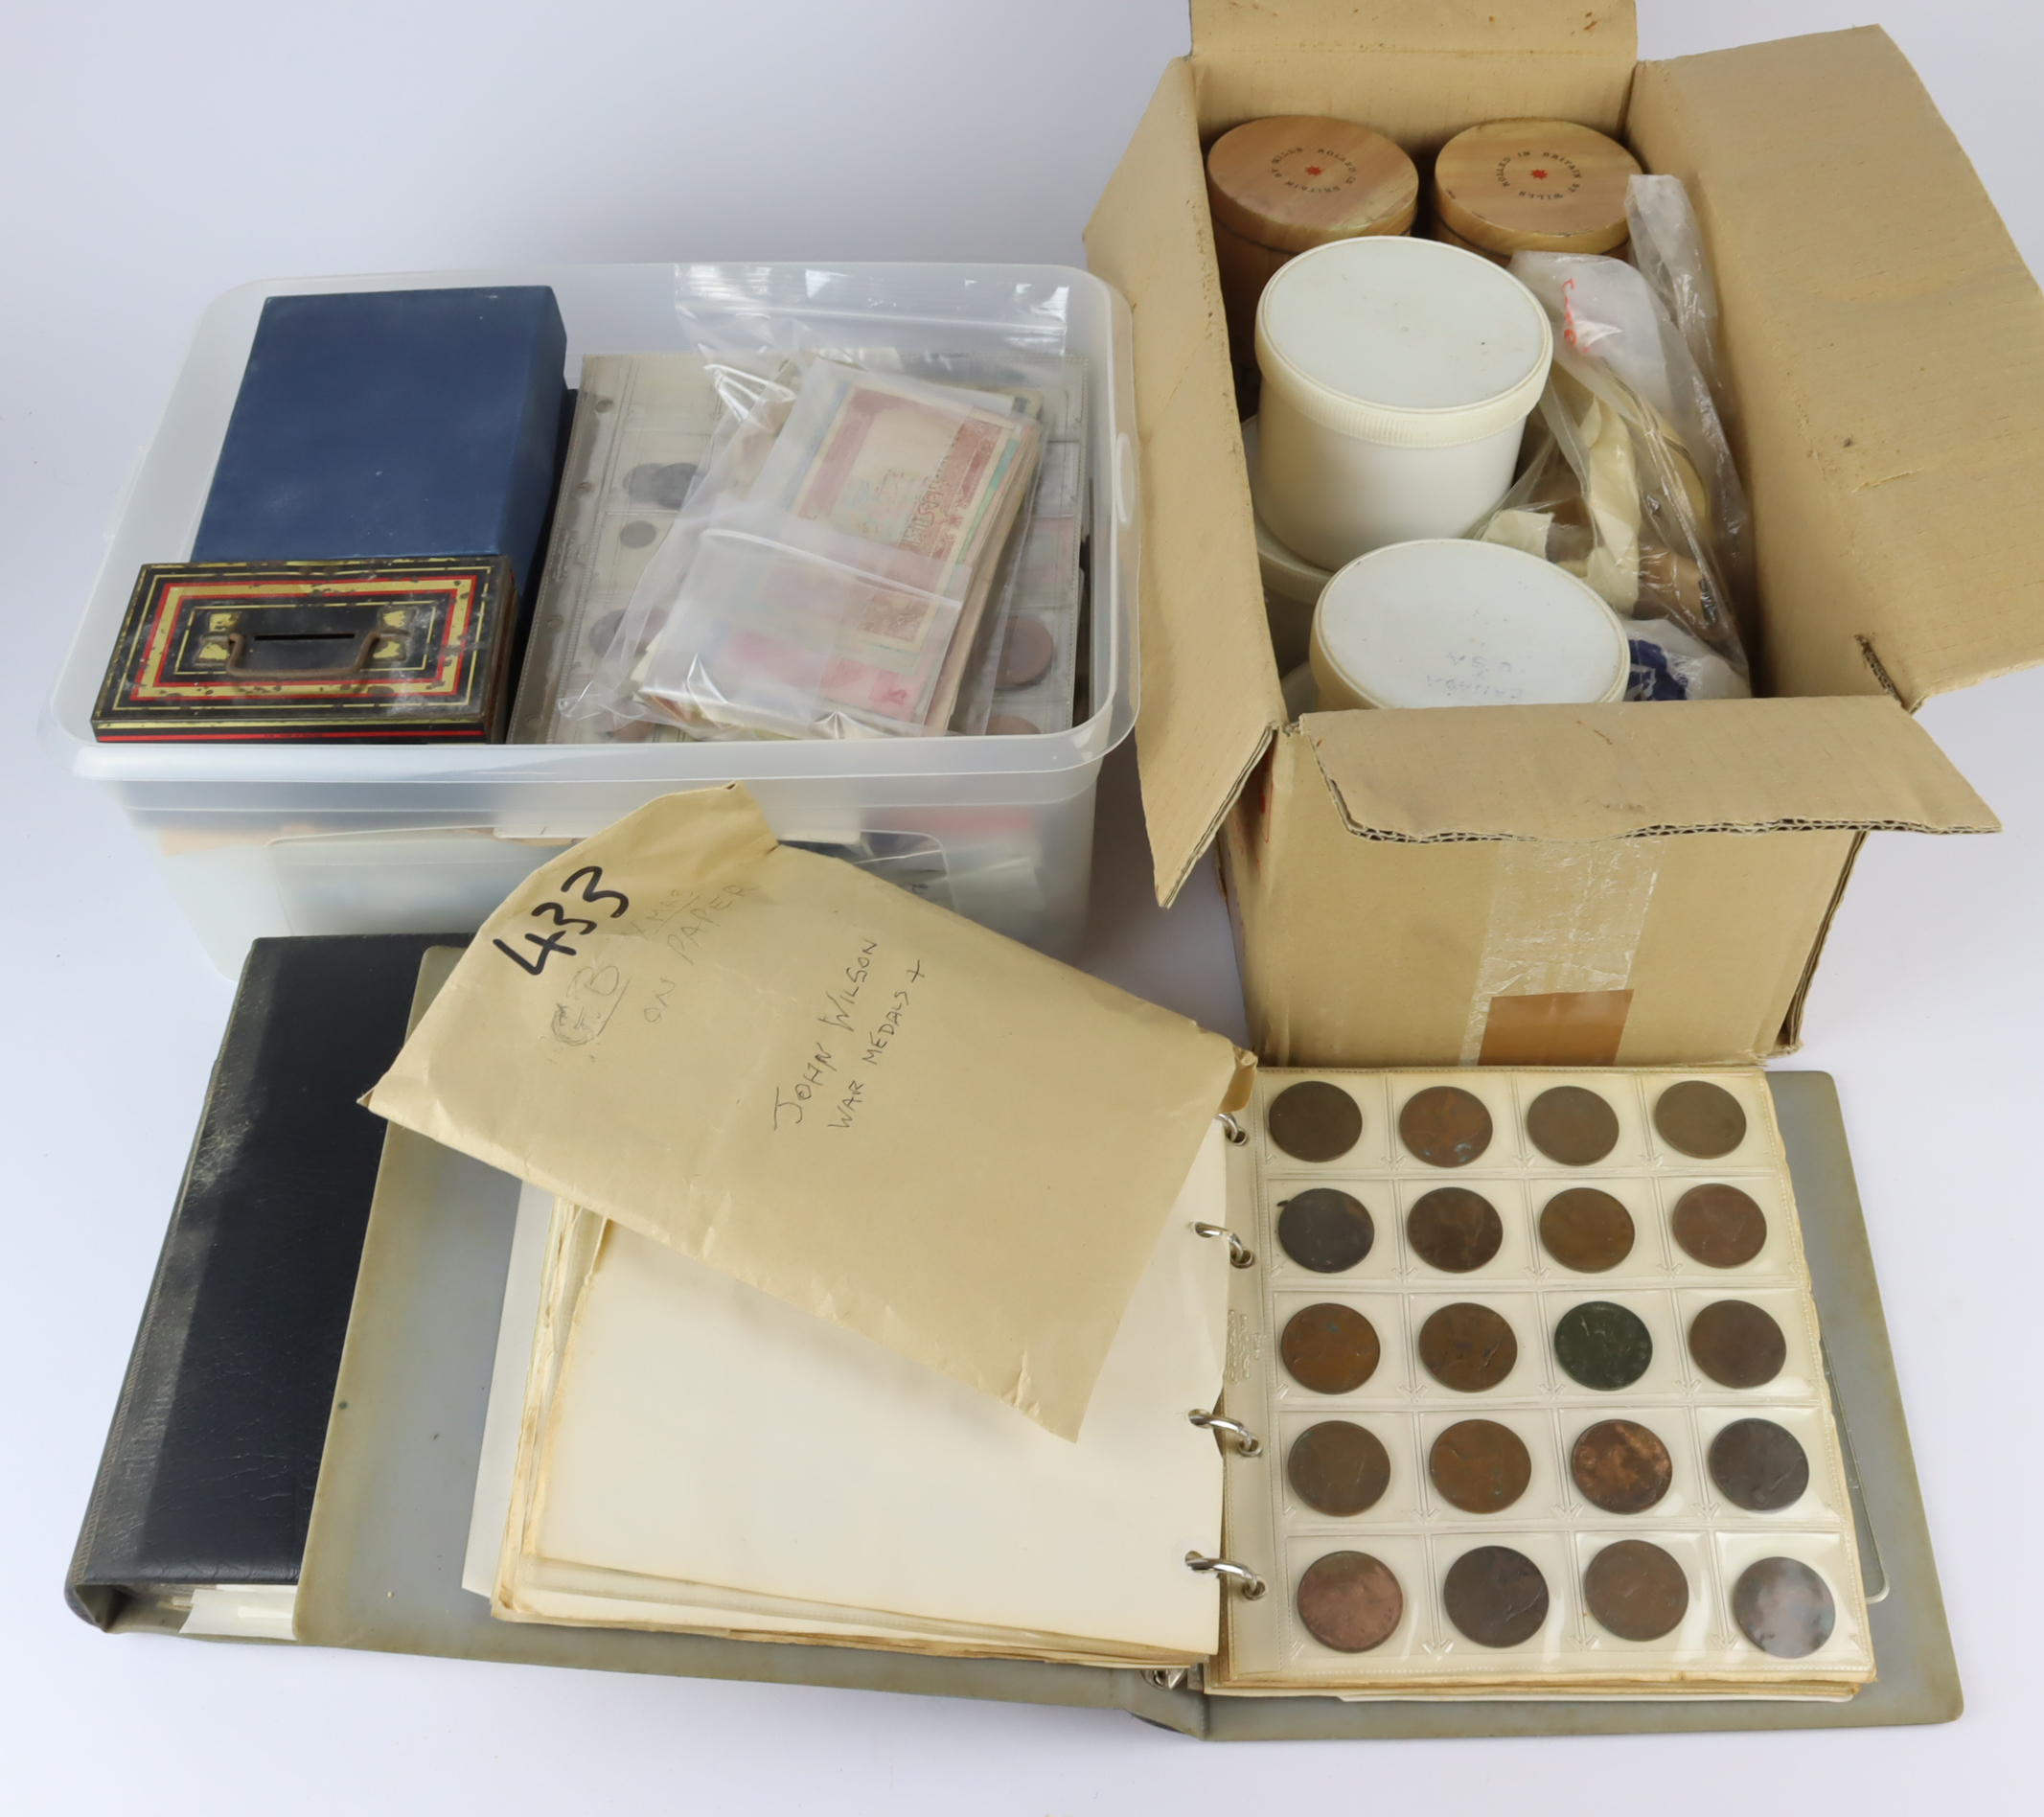 GB & World coins, tokens, medals & misc. A large accumulation in a plastic tub and 2 albums, ancient